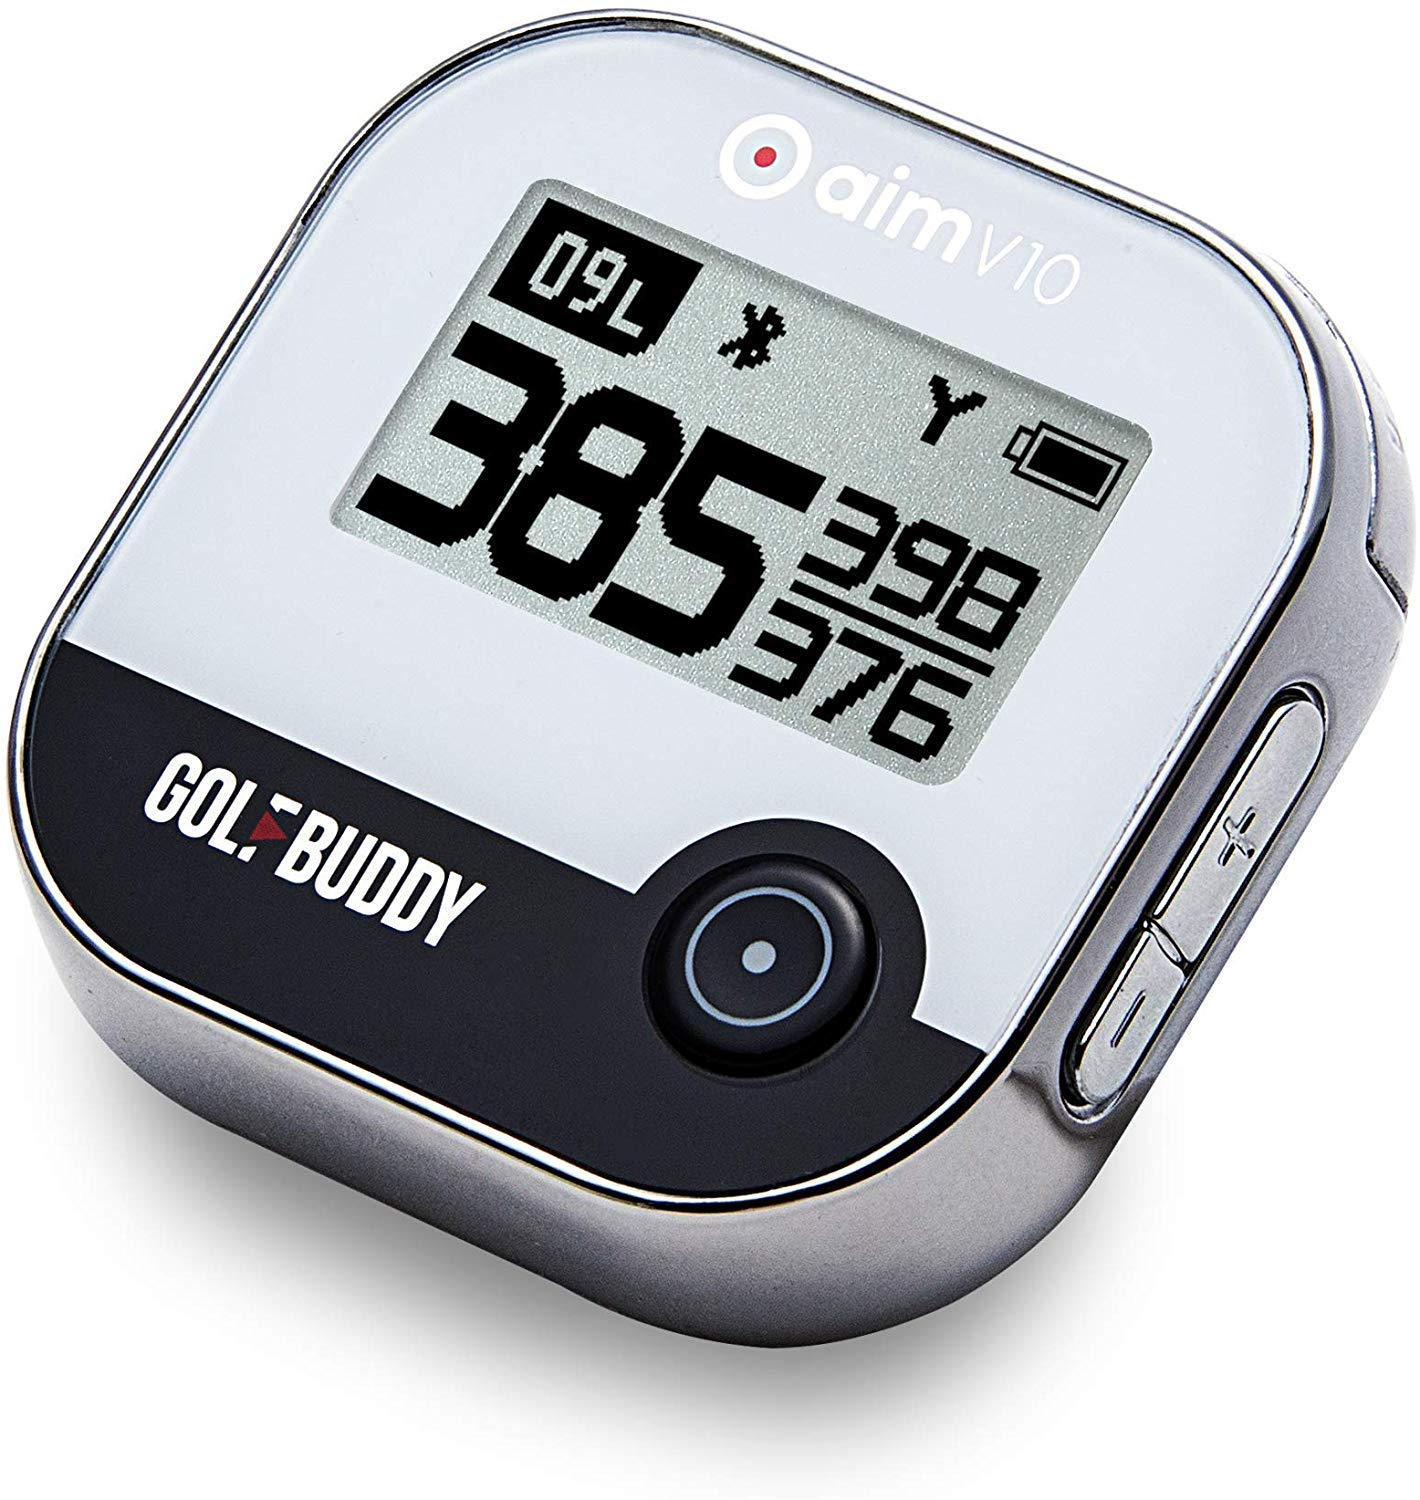 GOLFBUDDY aim V10 Talking Golf GPS, Chrome